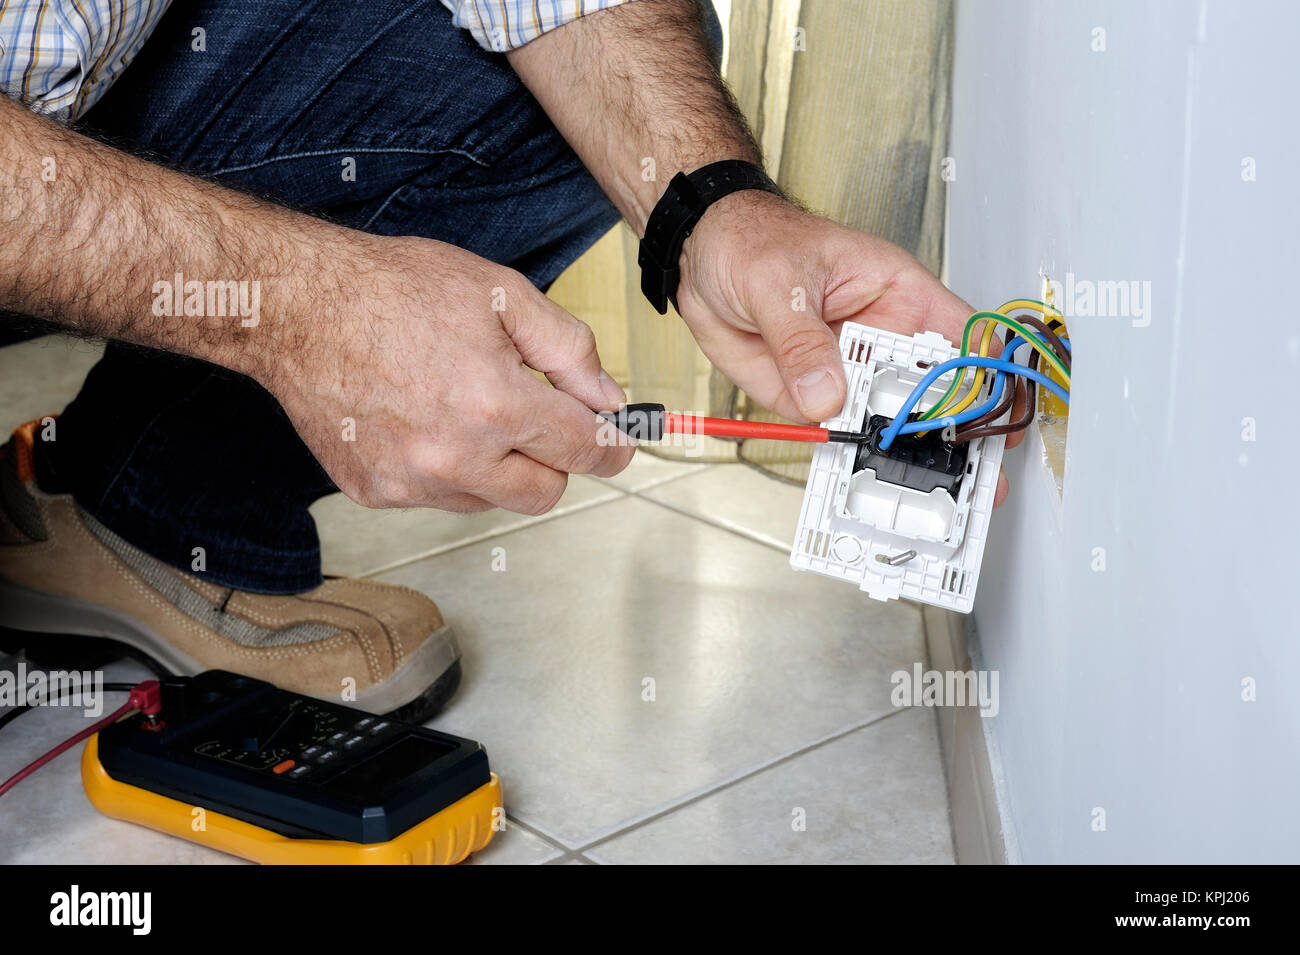 Electrician At Work On Switches And Sockets Of A Residential Electrical System